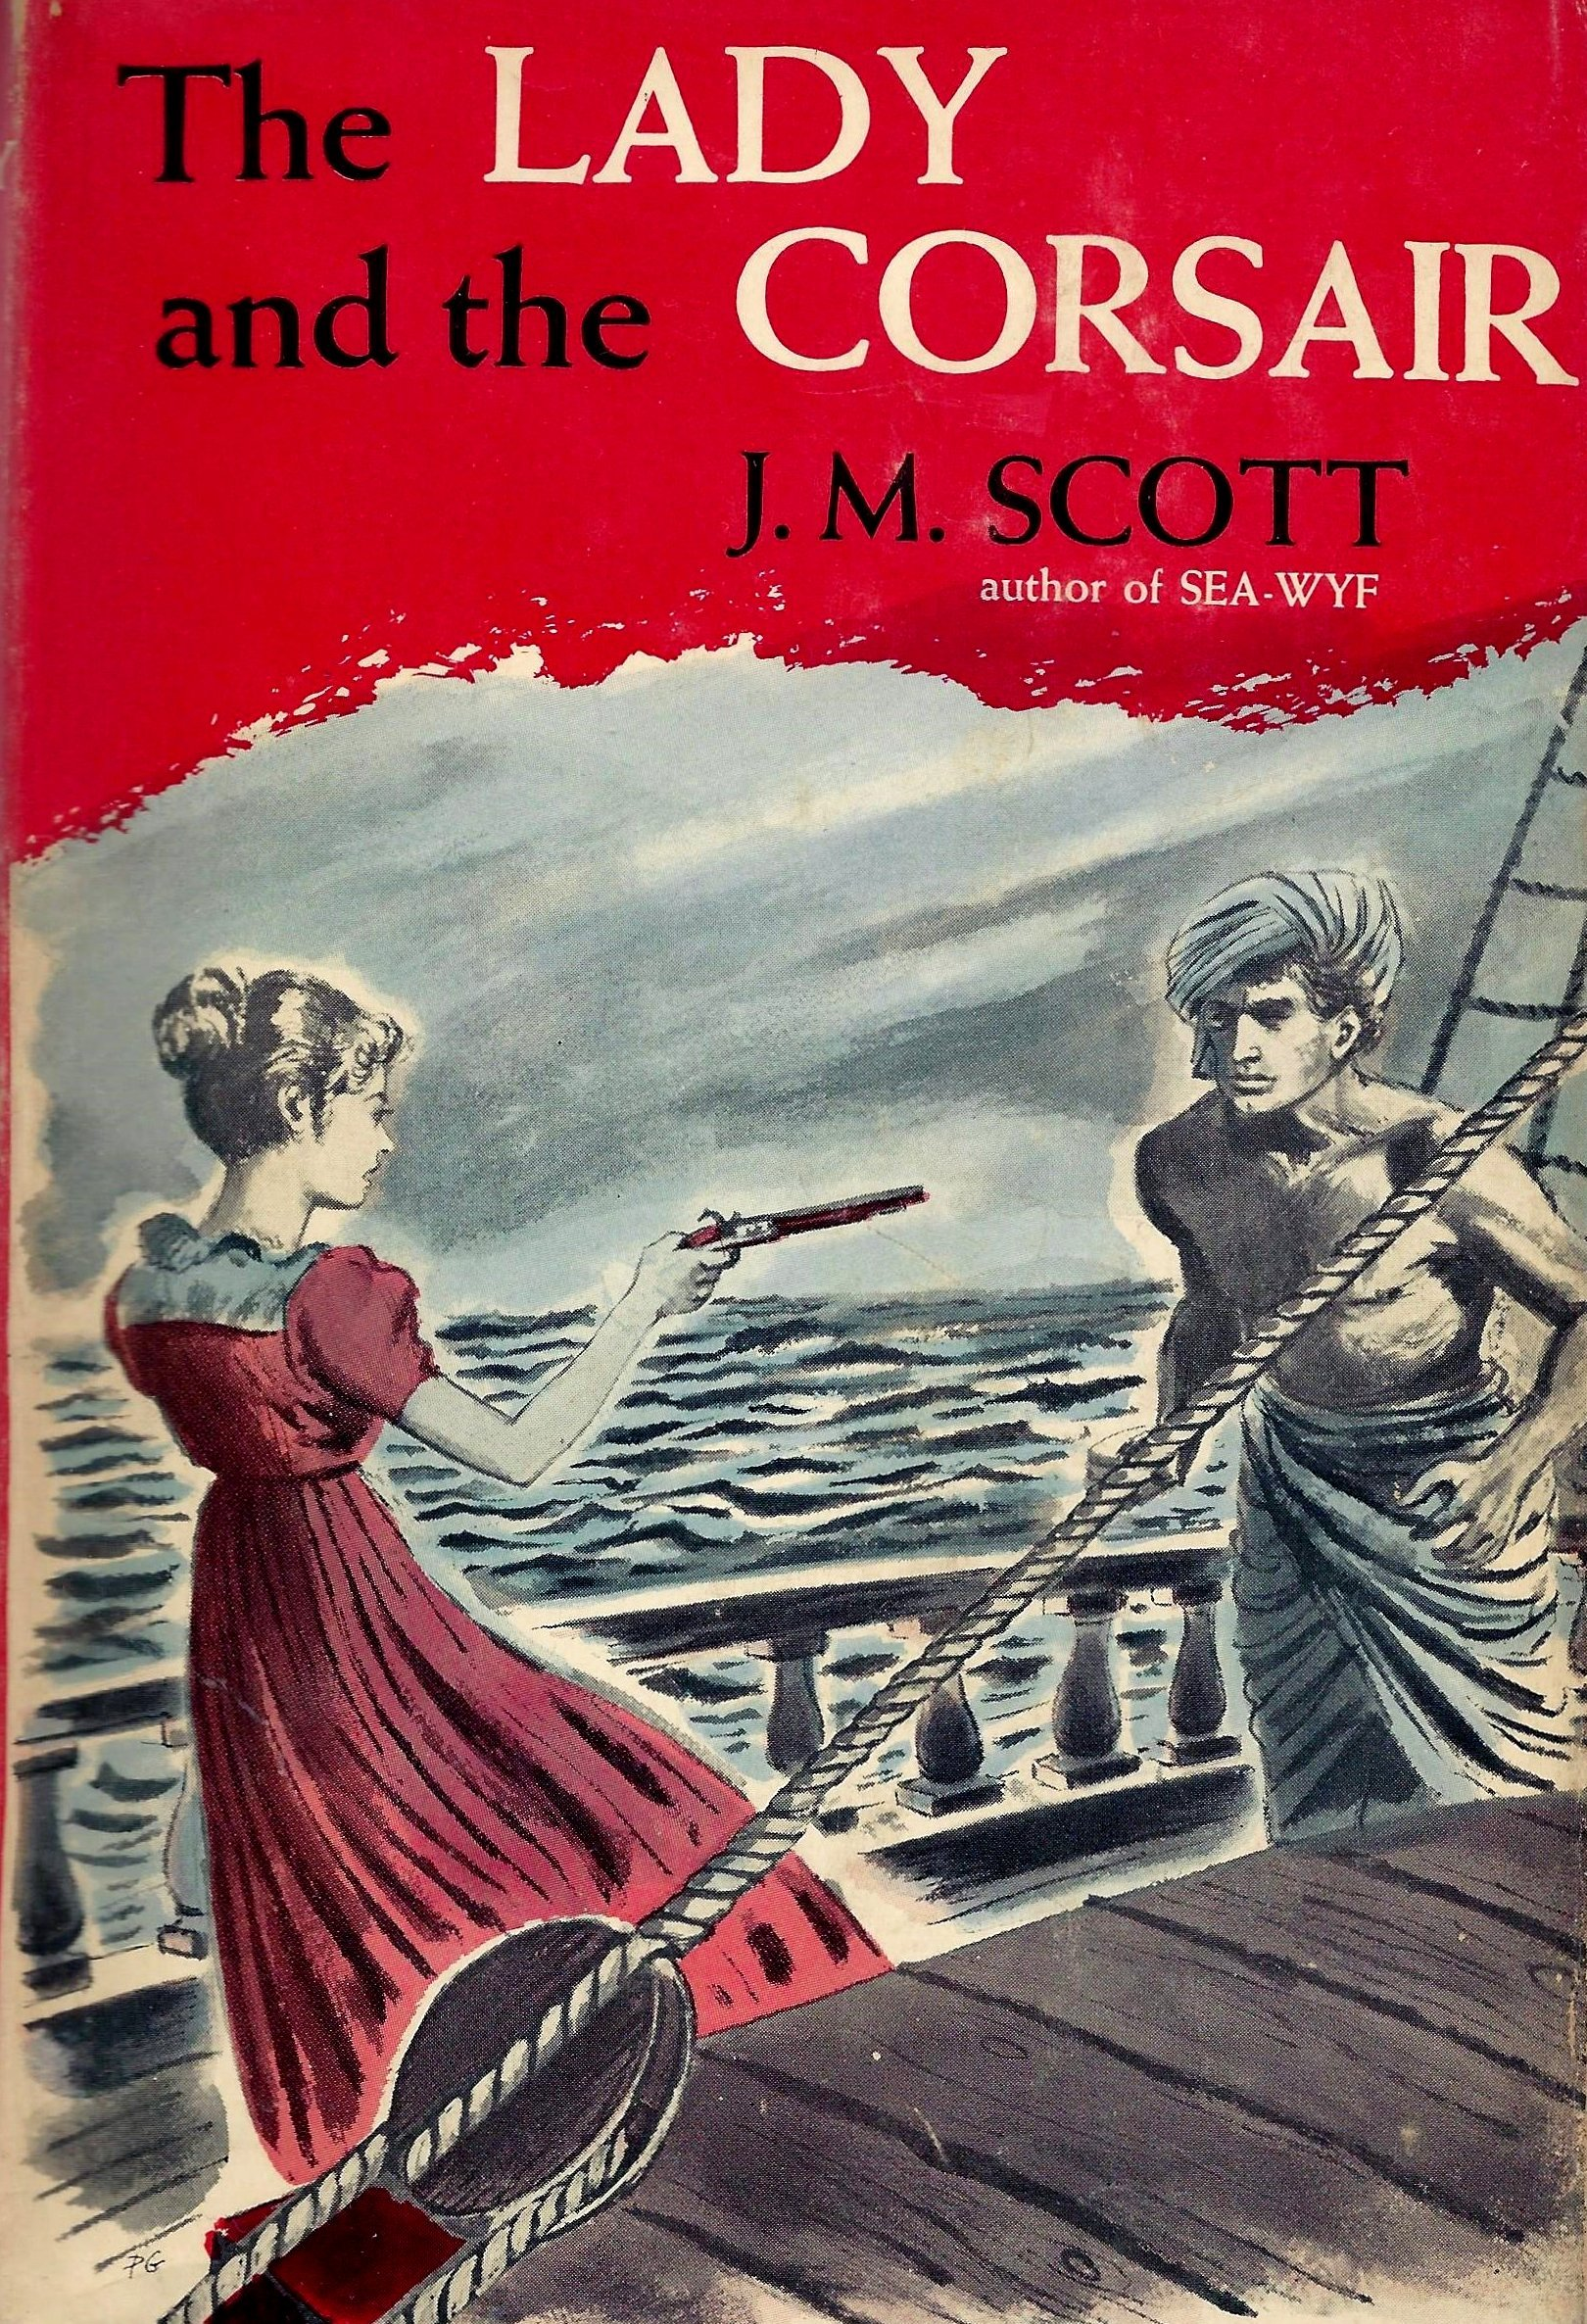 The Lady and the Corsair J.M. Scott